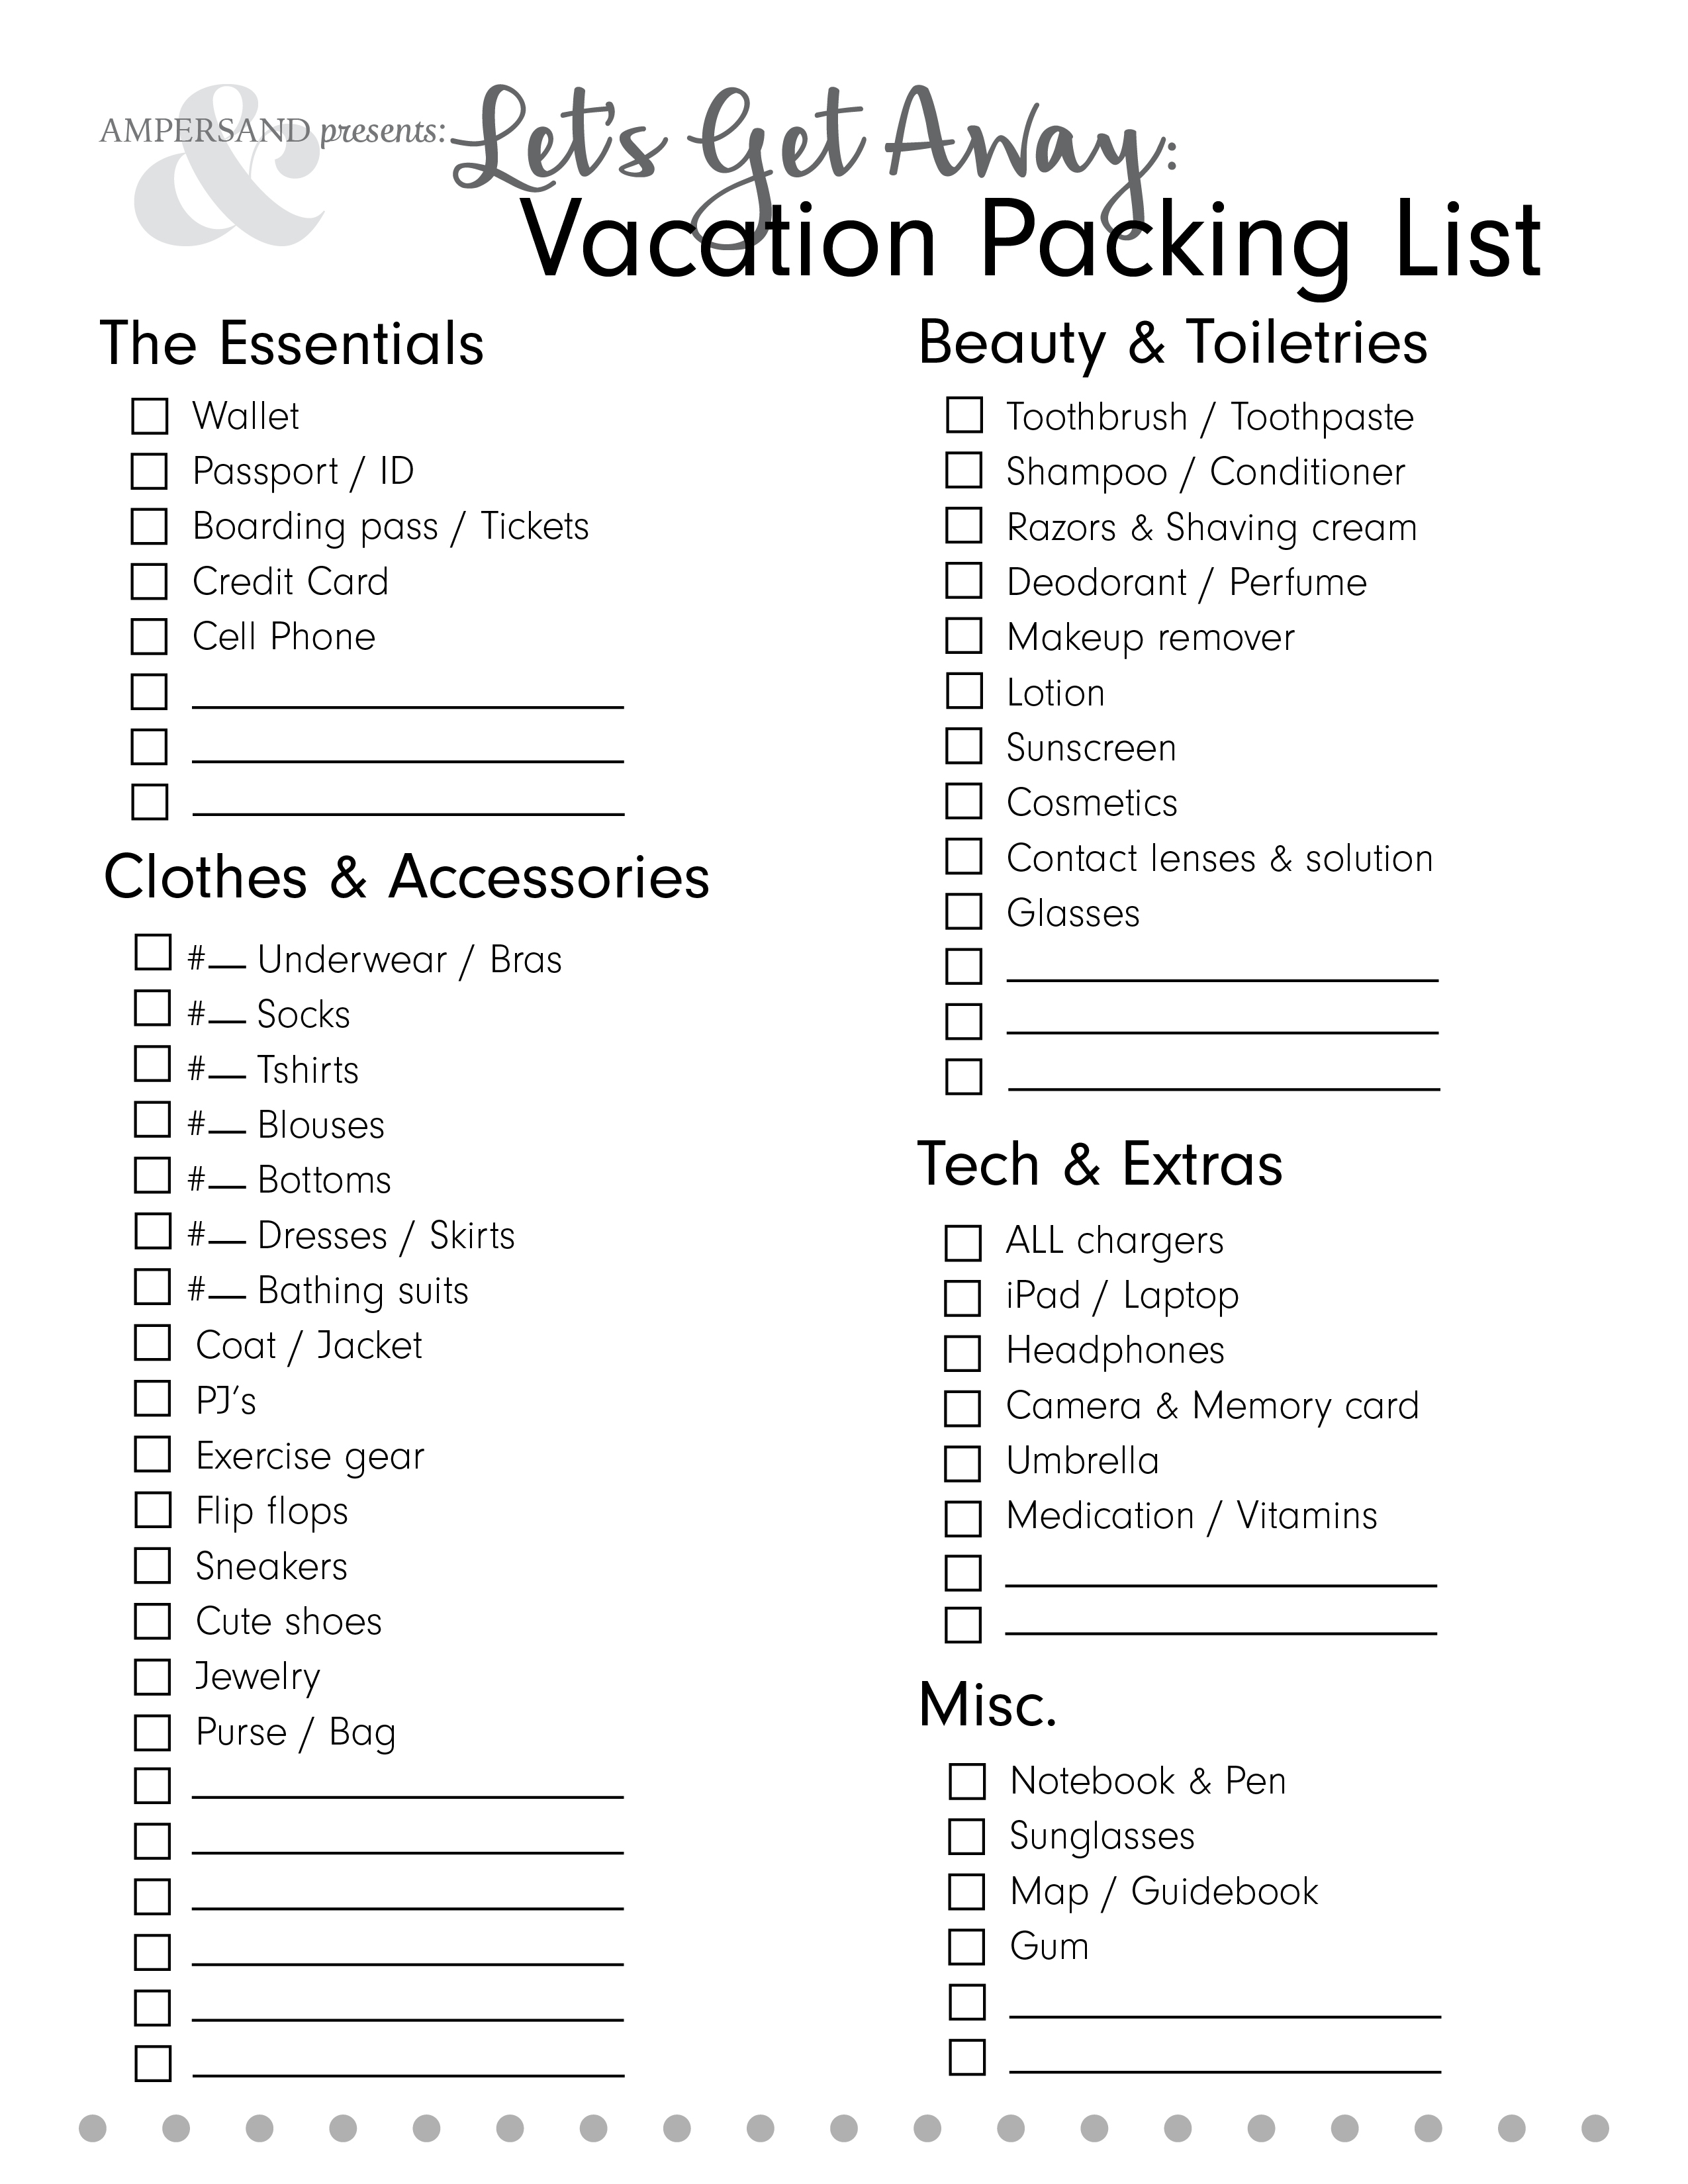 picture relating to Printable Packing List named Allows Buy Absent: Free of charge Printable Packing Checklist Ampersand